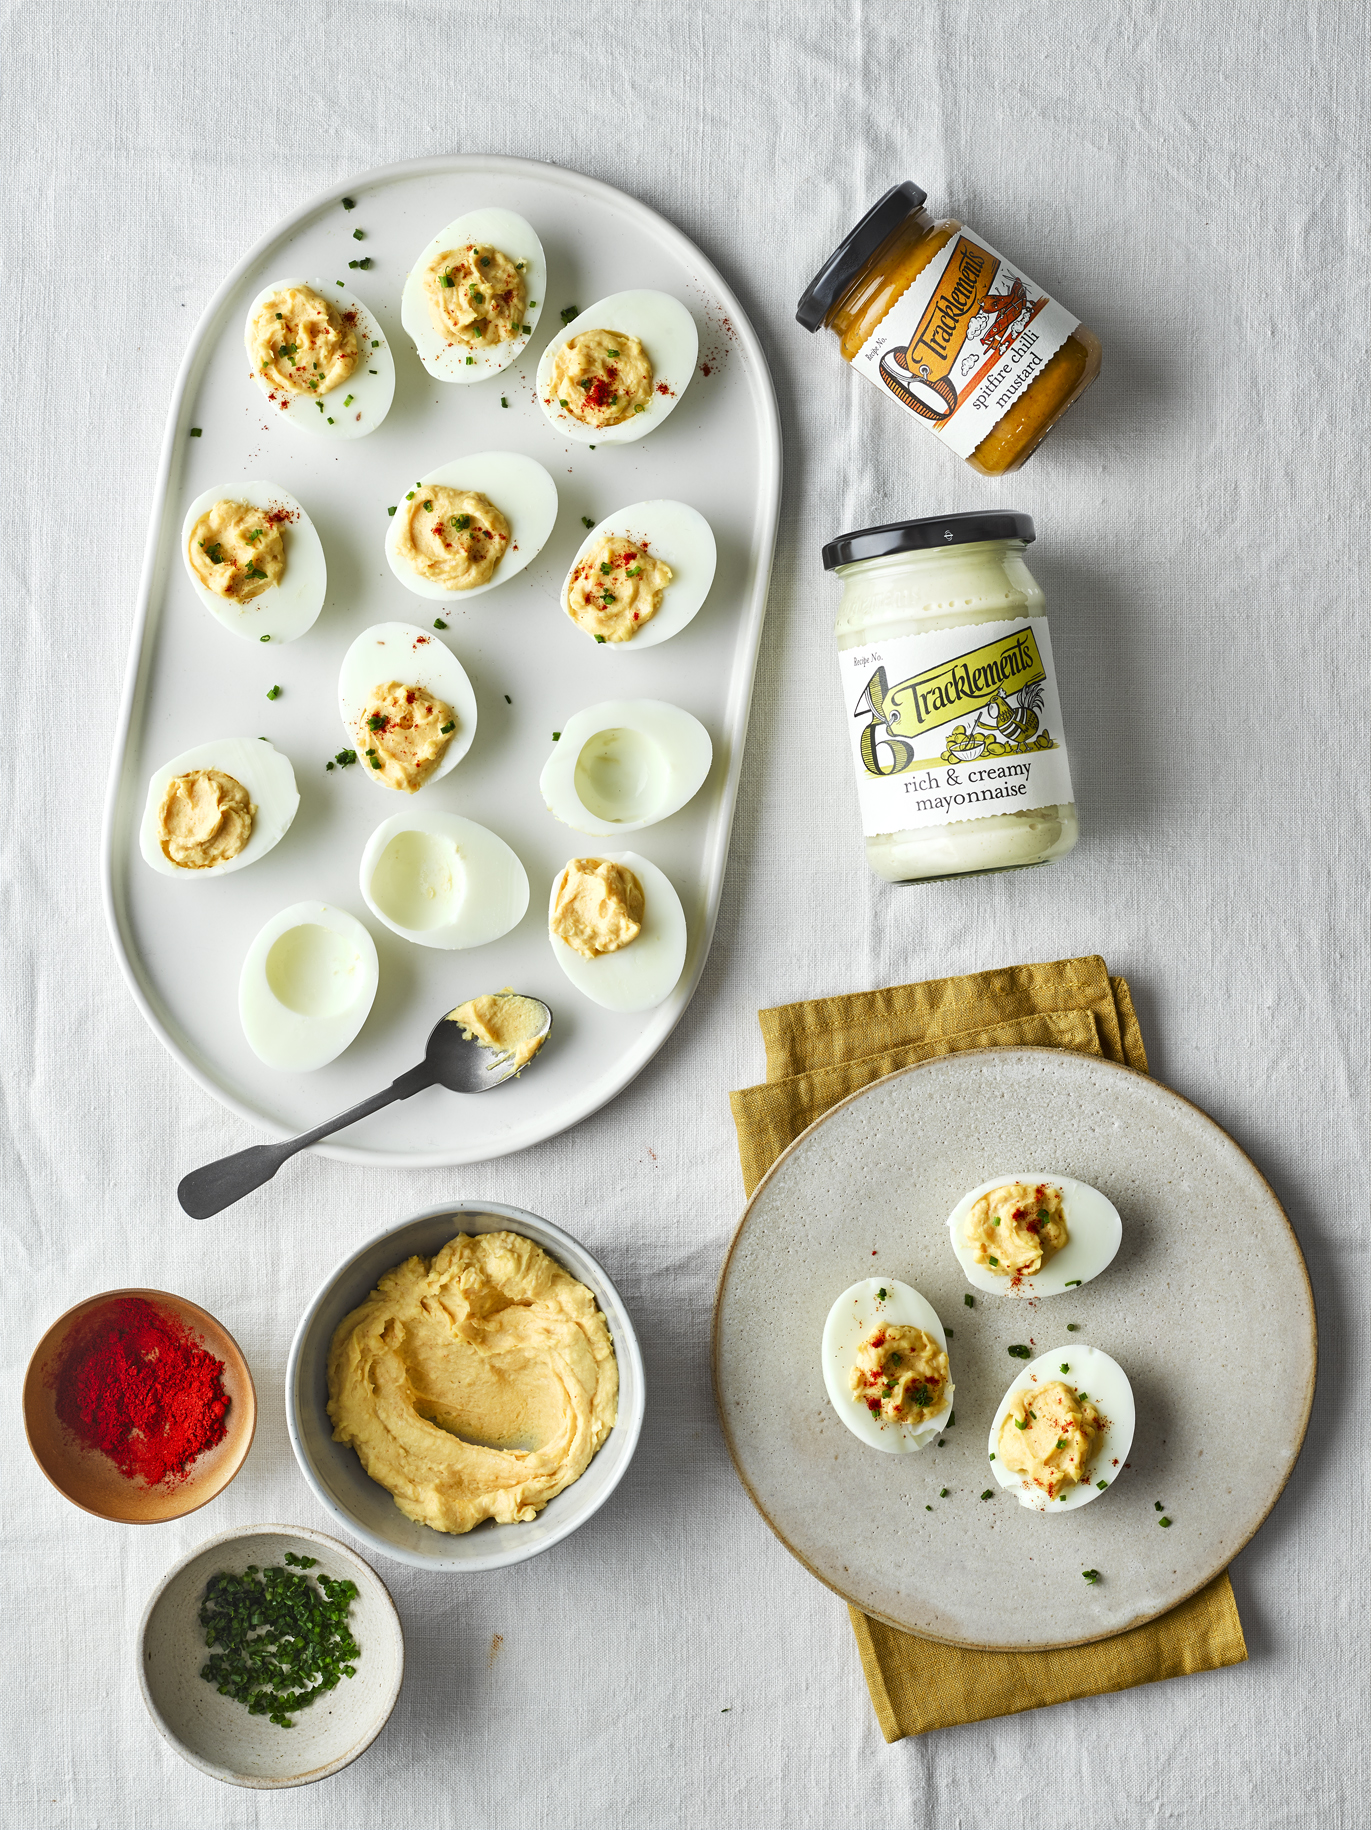 Devilled Eggs with Spitfire Chilli Mustard and Rich & Creamy Mayonnaise